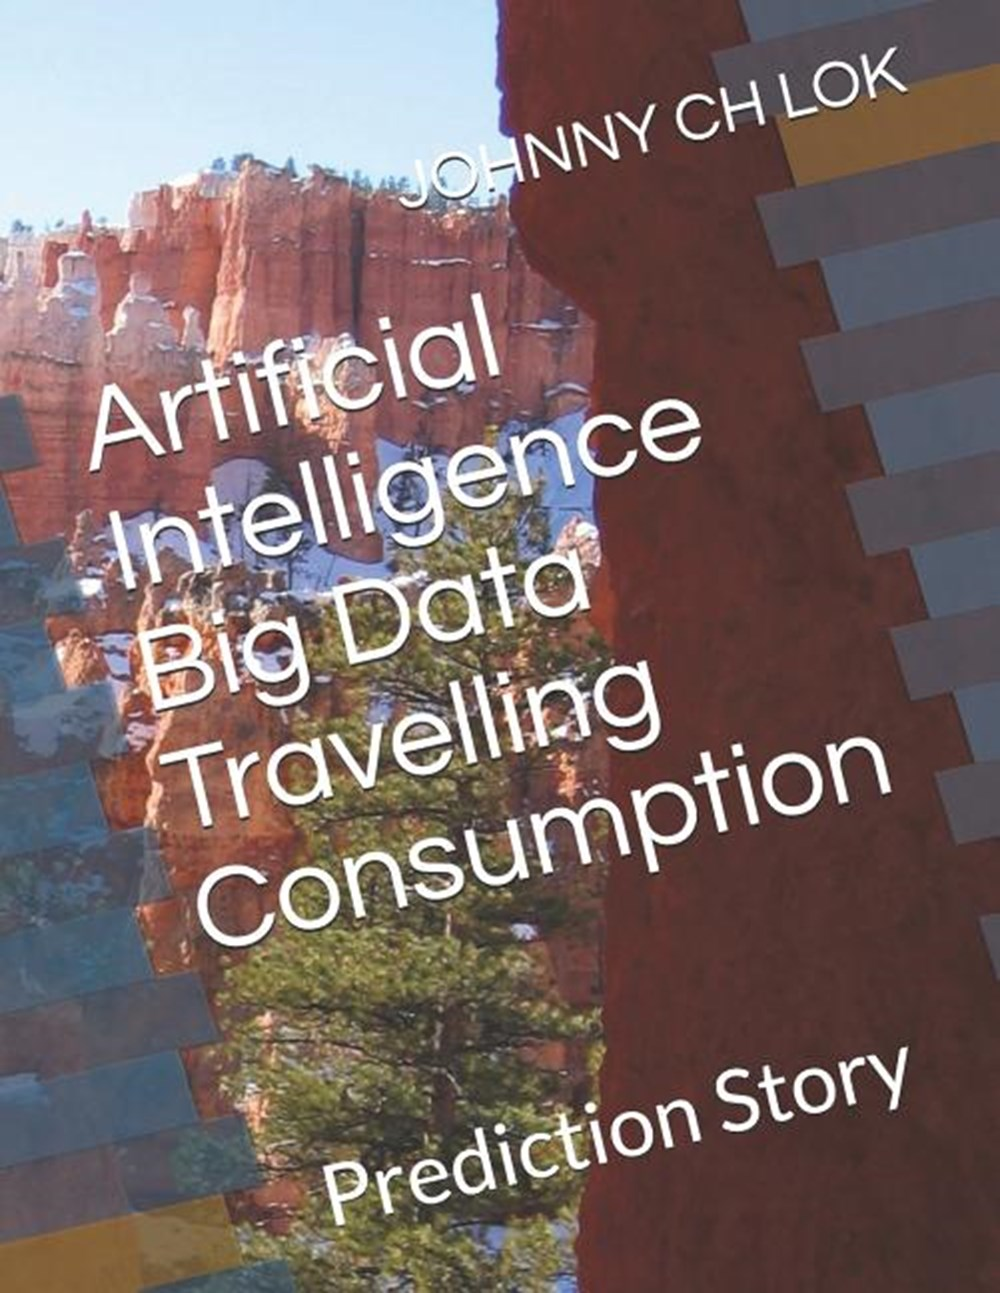 Artificial Intelligence Big Data Travelling Consumption Prediction Story